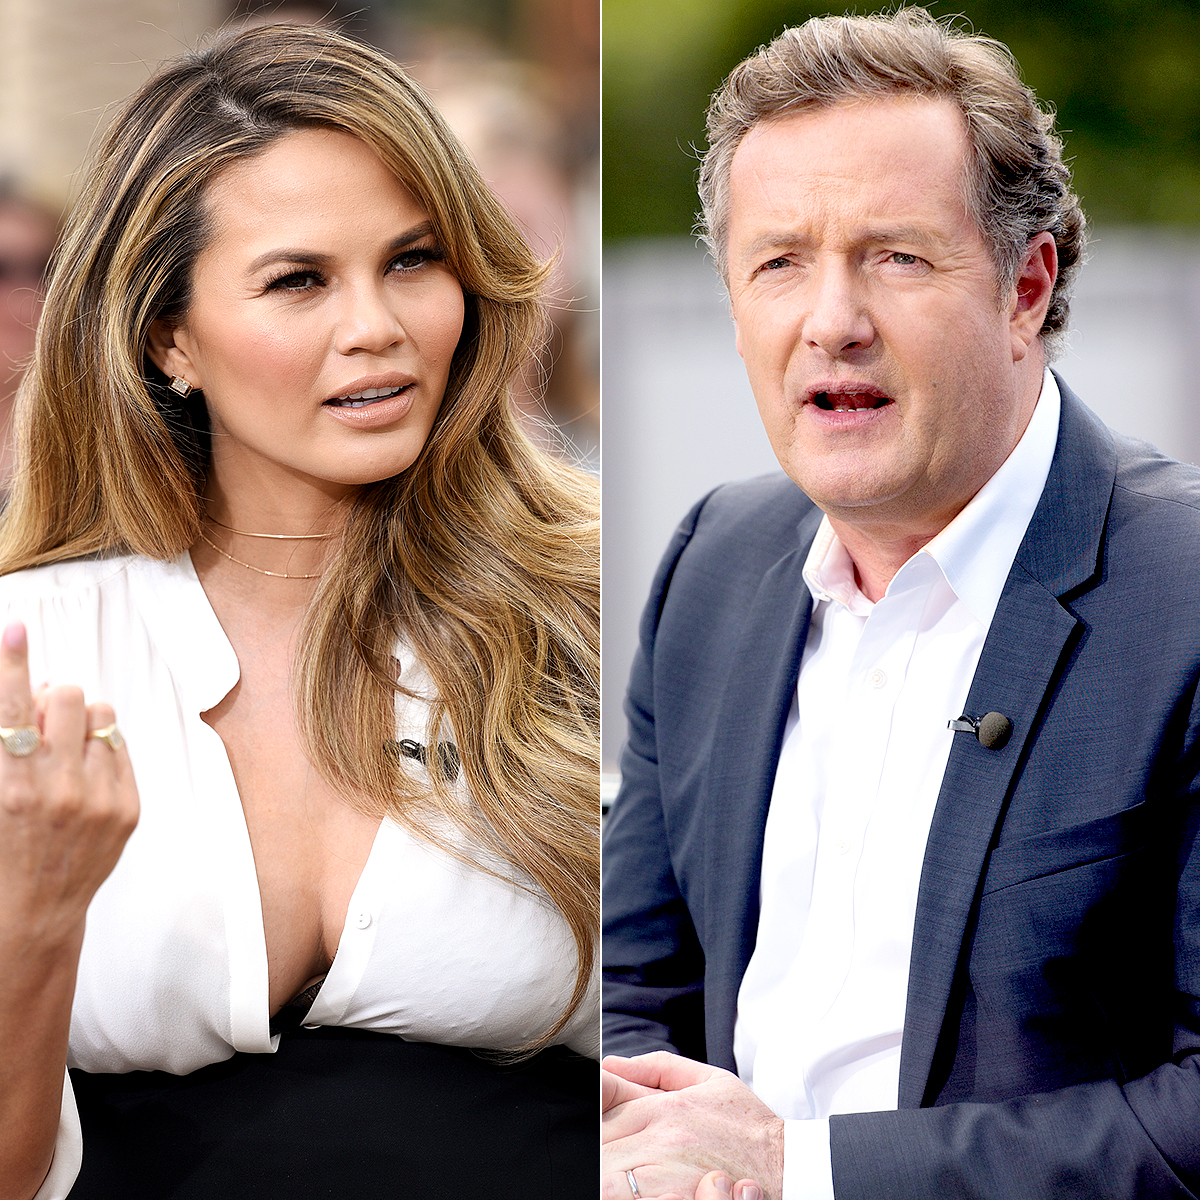 Chrissy Teigen and Piers Morgan